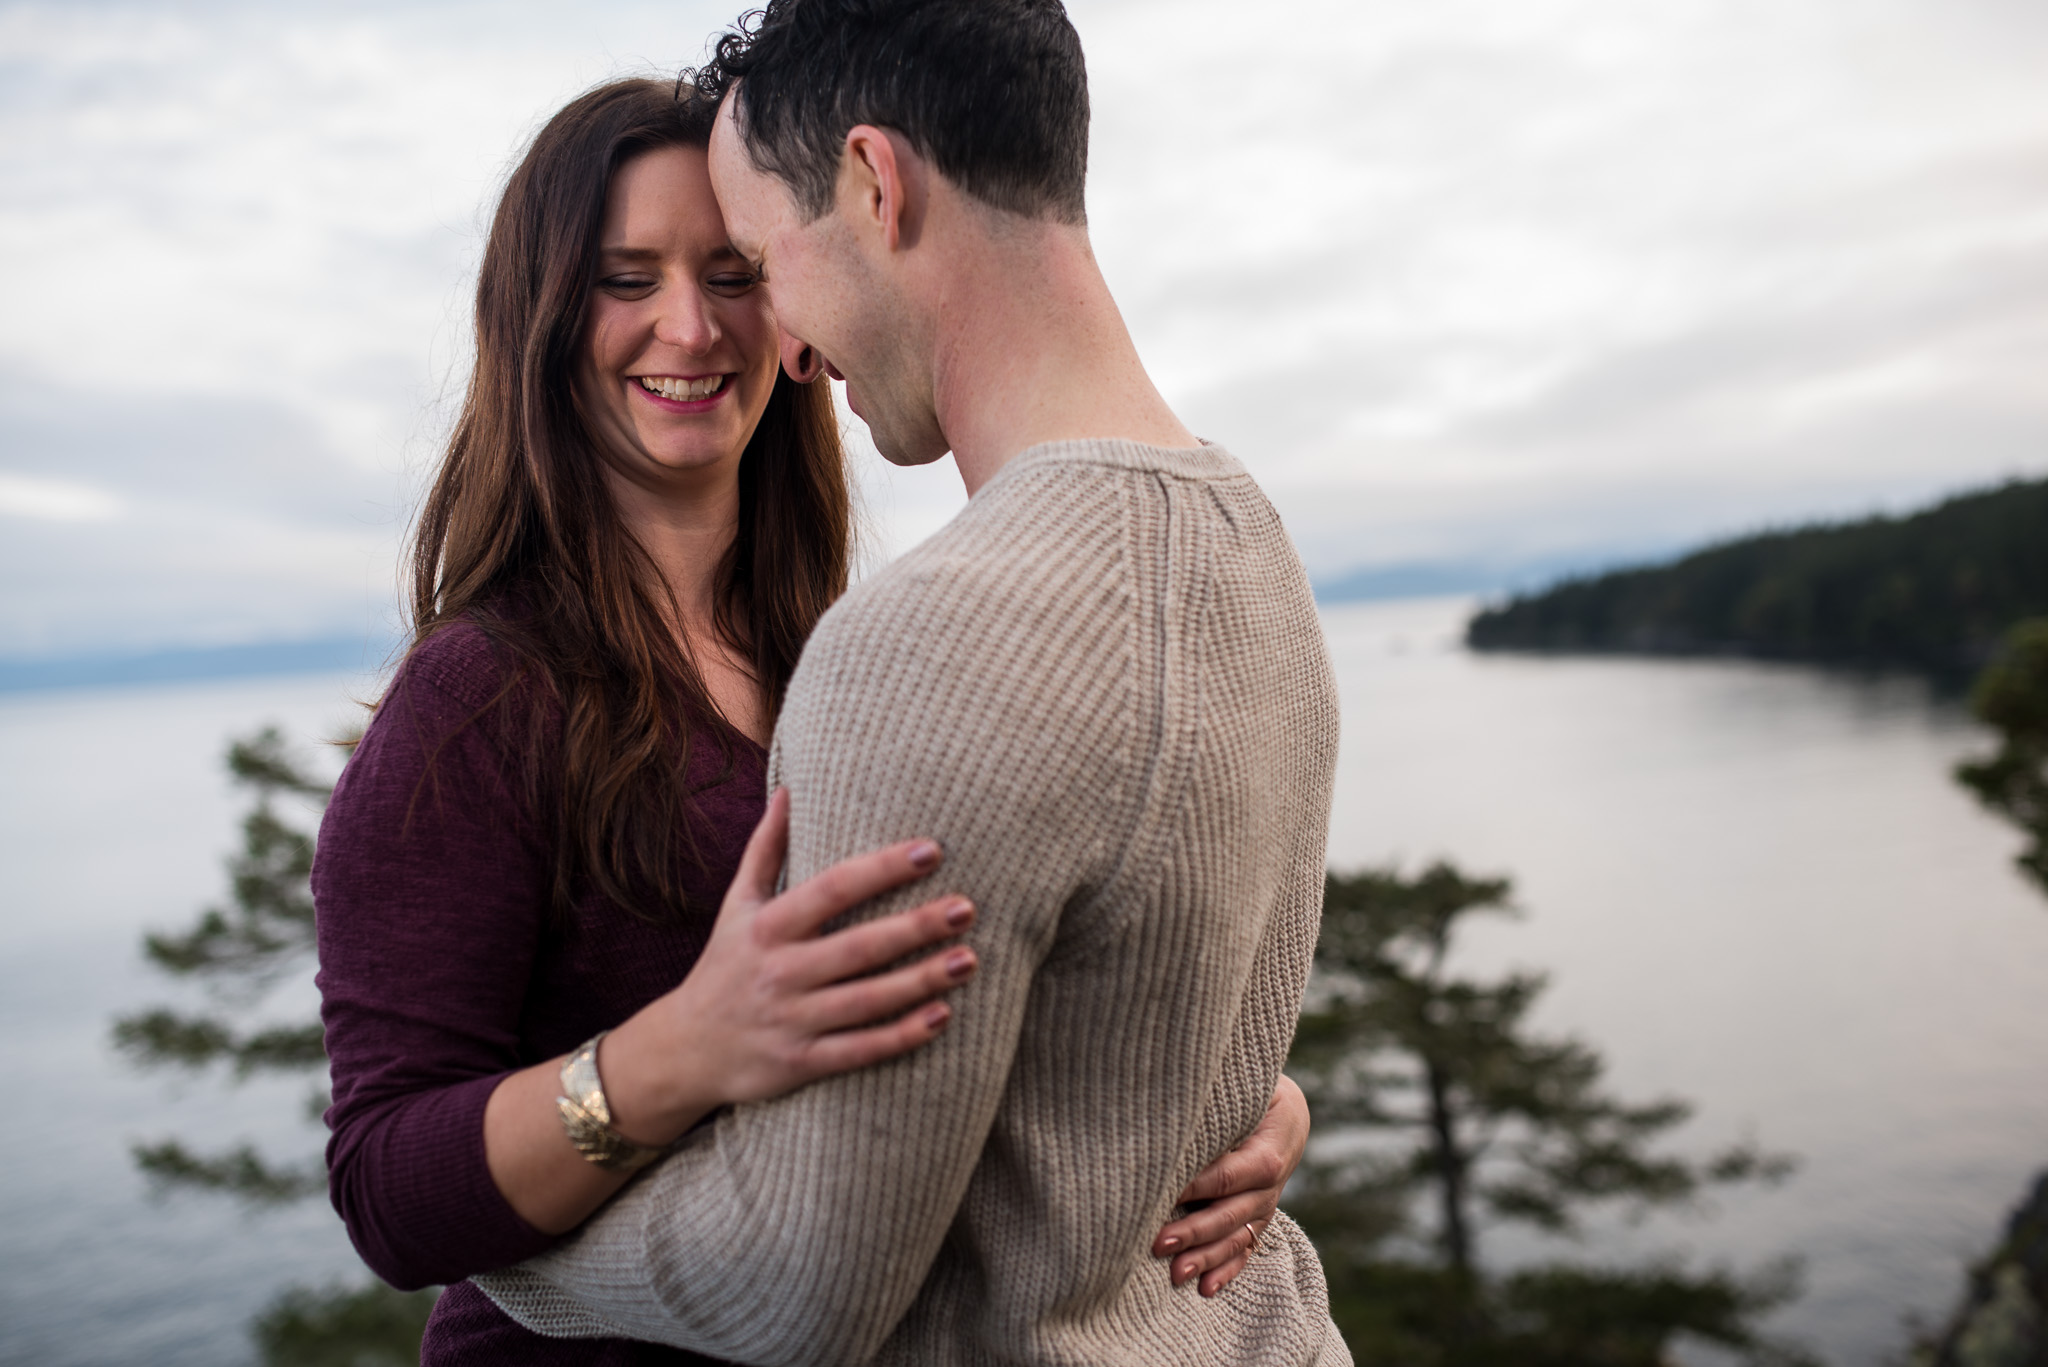 east-sooke-park-engagement-victoria-wedding-photographers-17.jpg